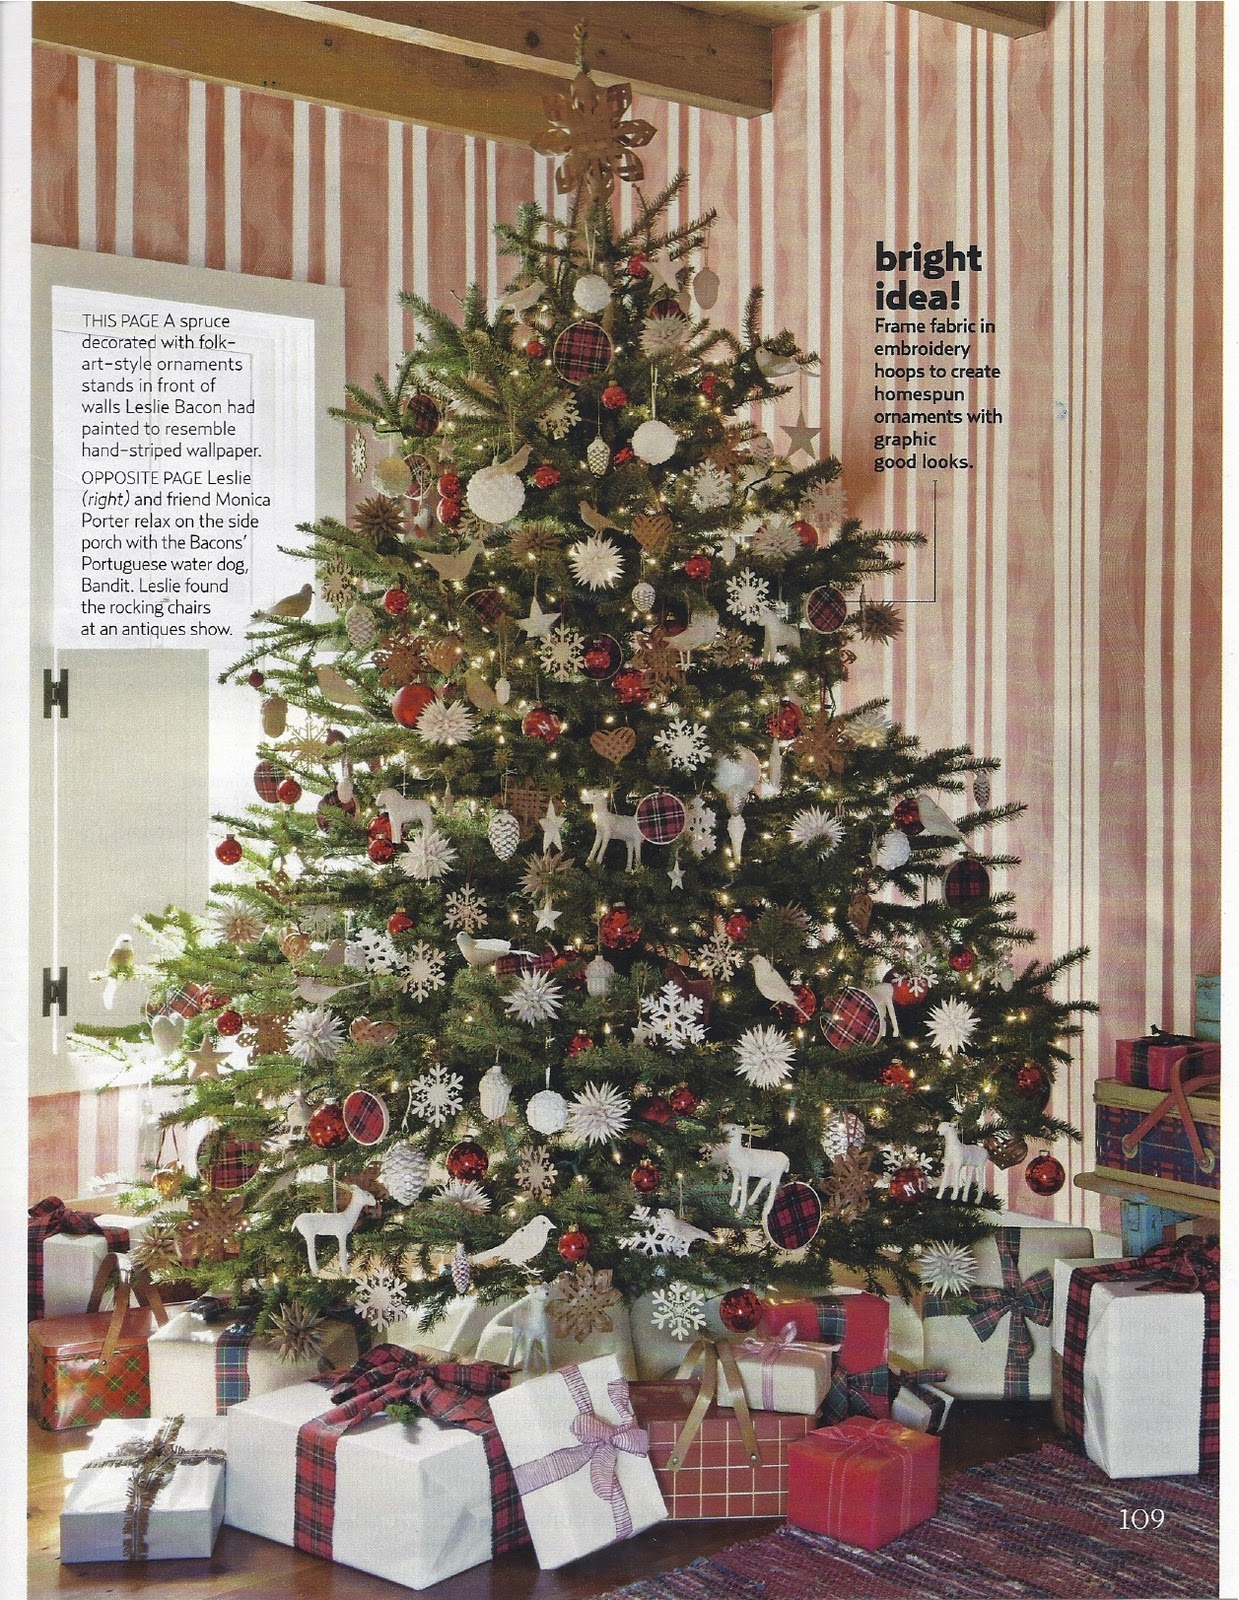 karin lidbeck 2011 country living magazine christmas feature. Black Bedroom Furniture Sets. Home Design Ideas